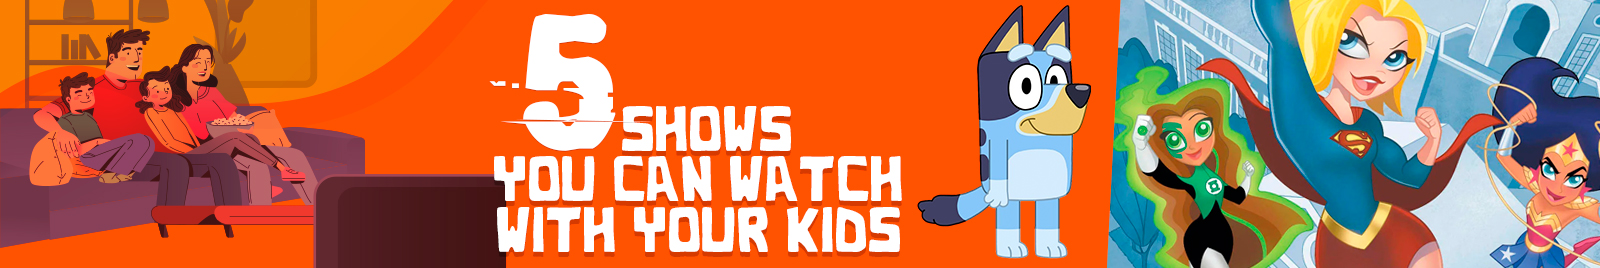 5 Shows You Can Watch With Your Kids